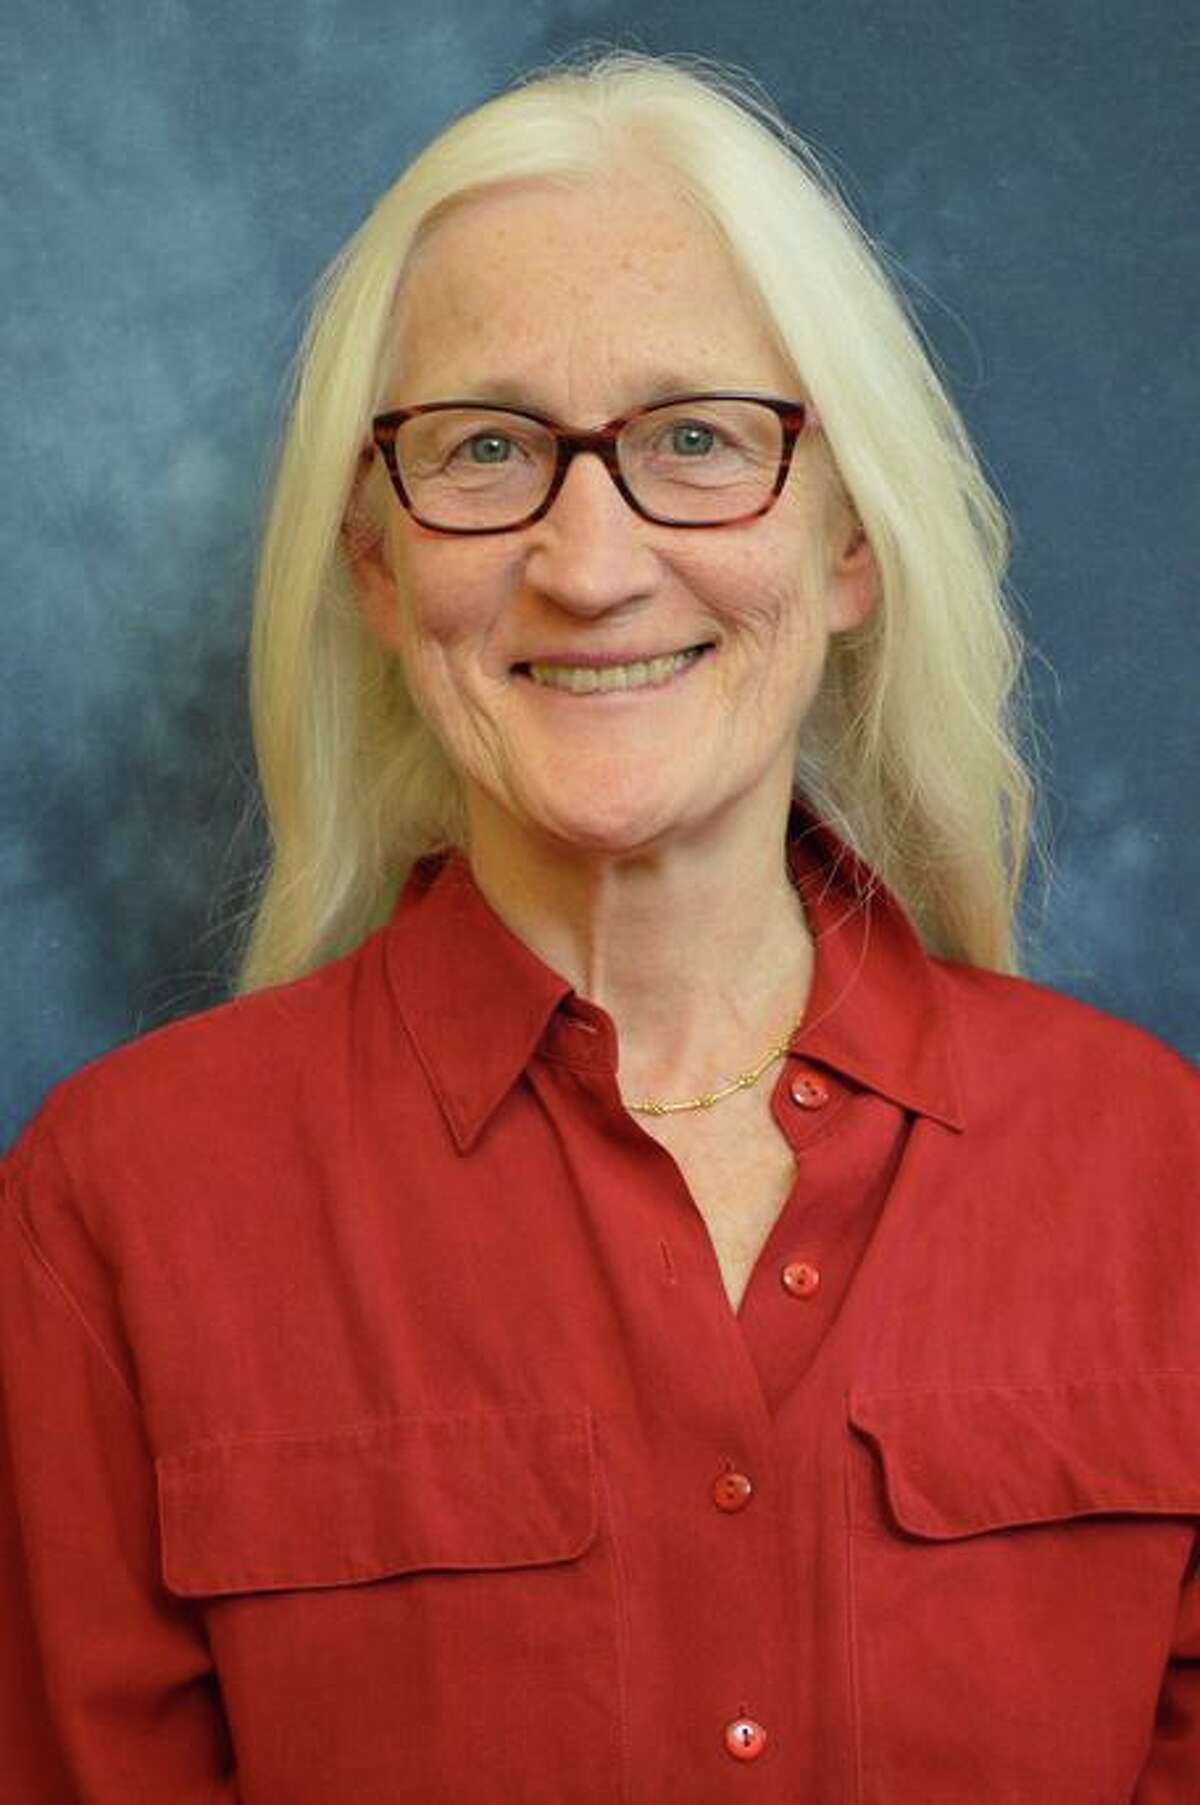 Suzanne OConnell is professor of earth and environmental sciences at Wesleyan University in Middletown.